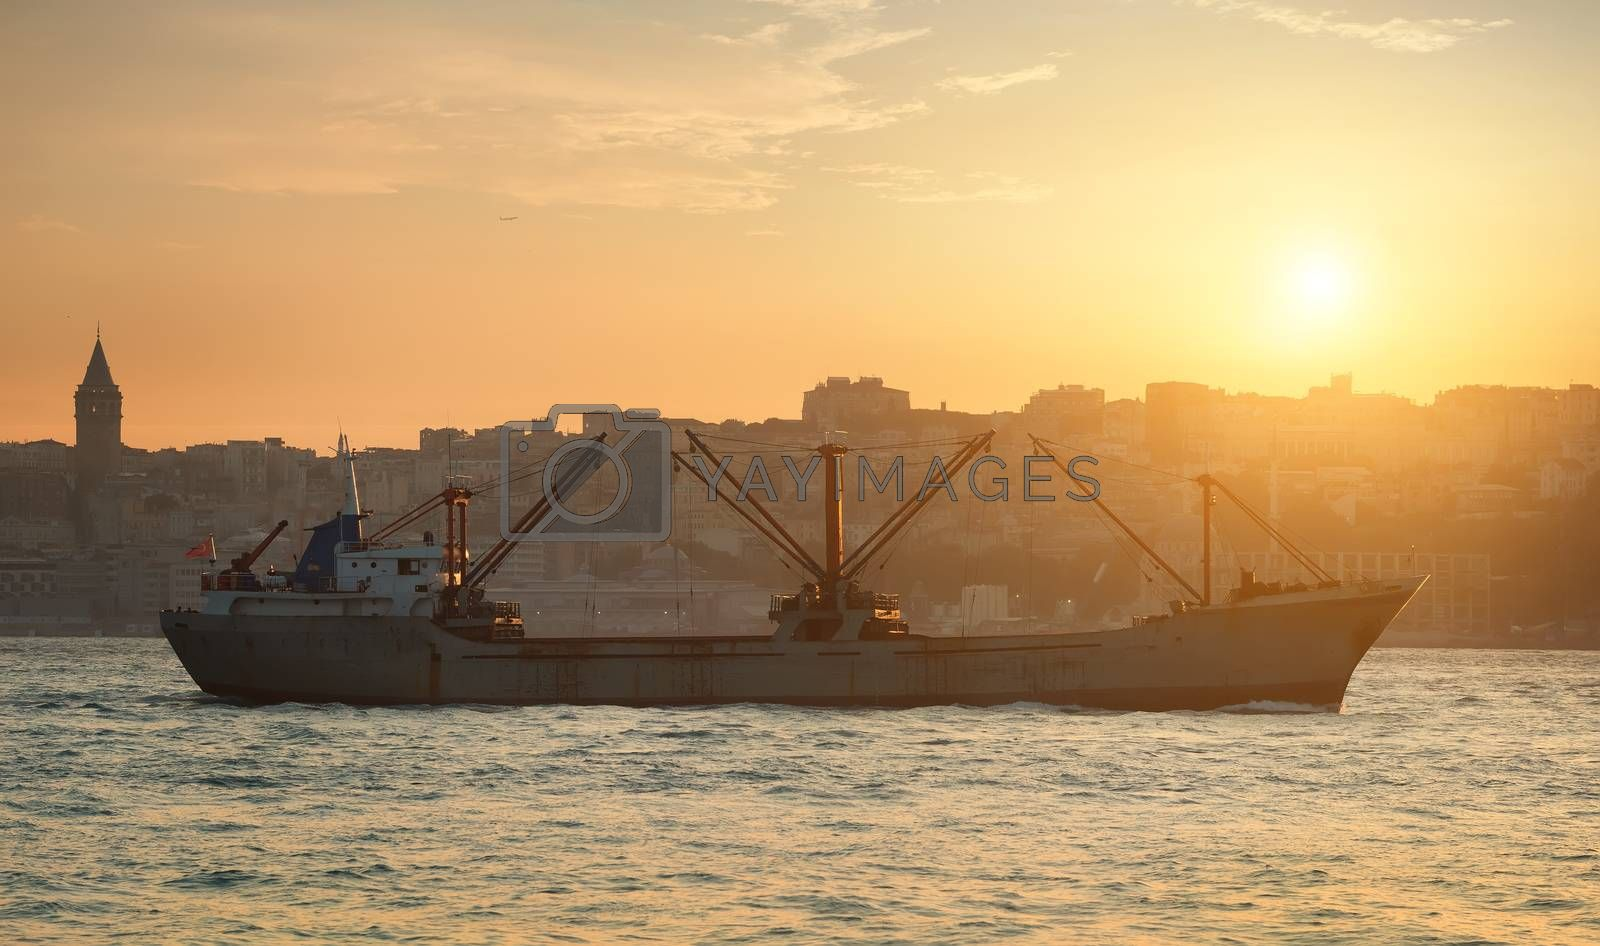 Cargo ship in Istanbul at sunset, Turkey